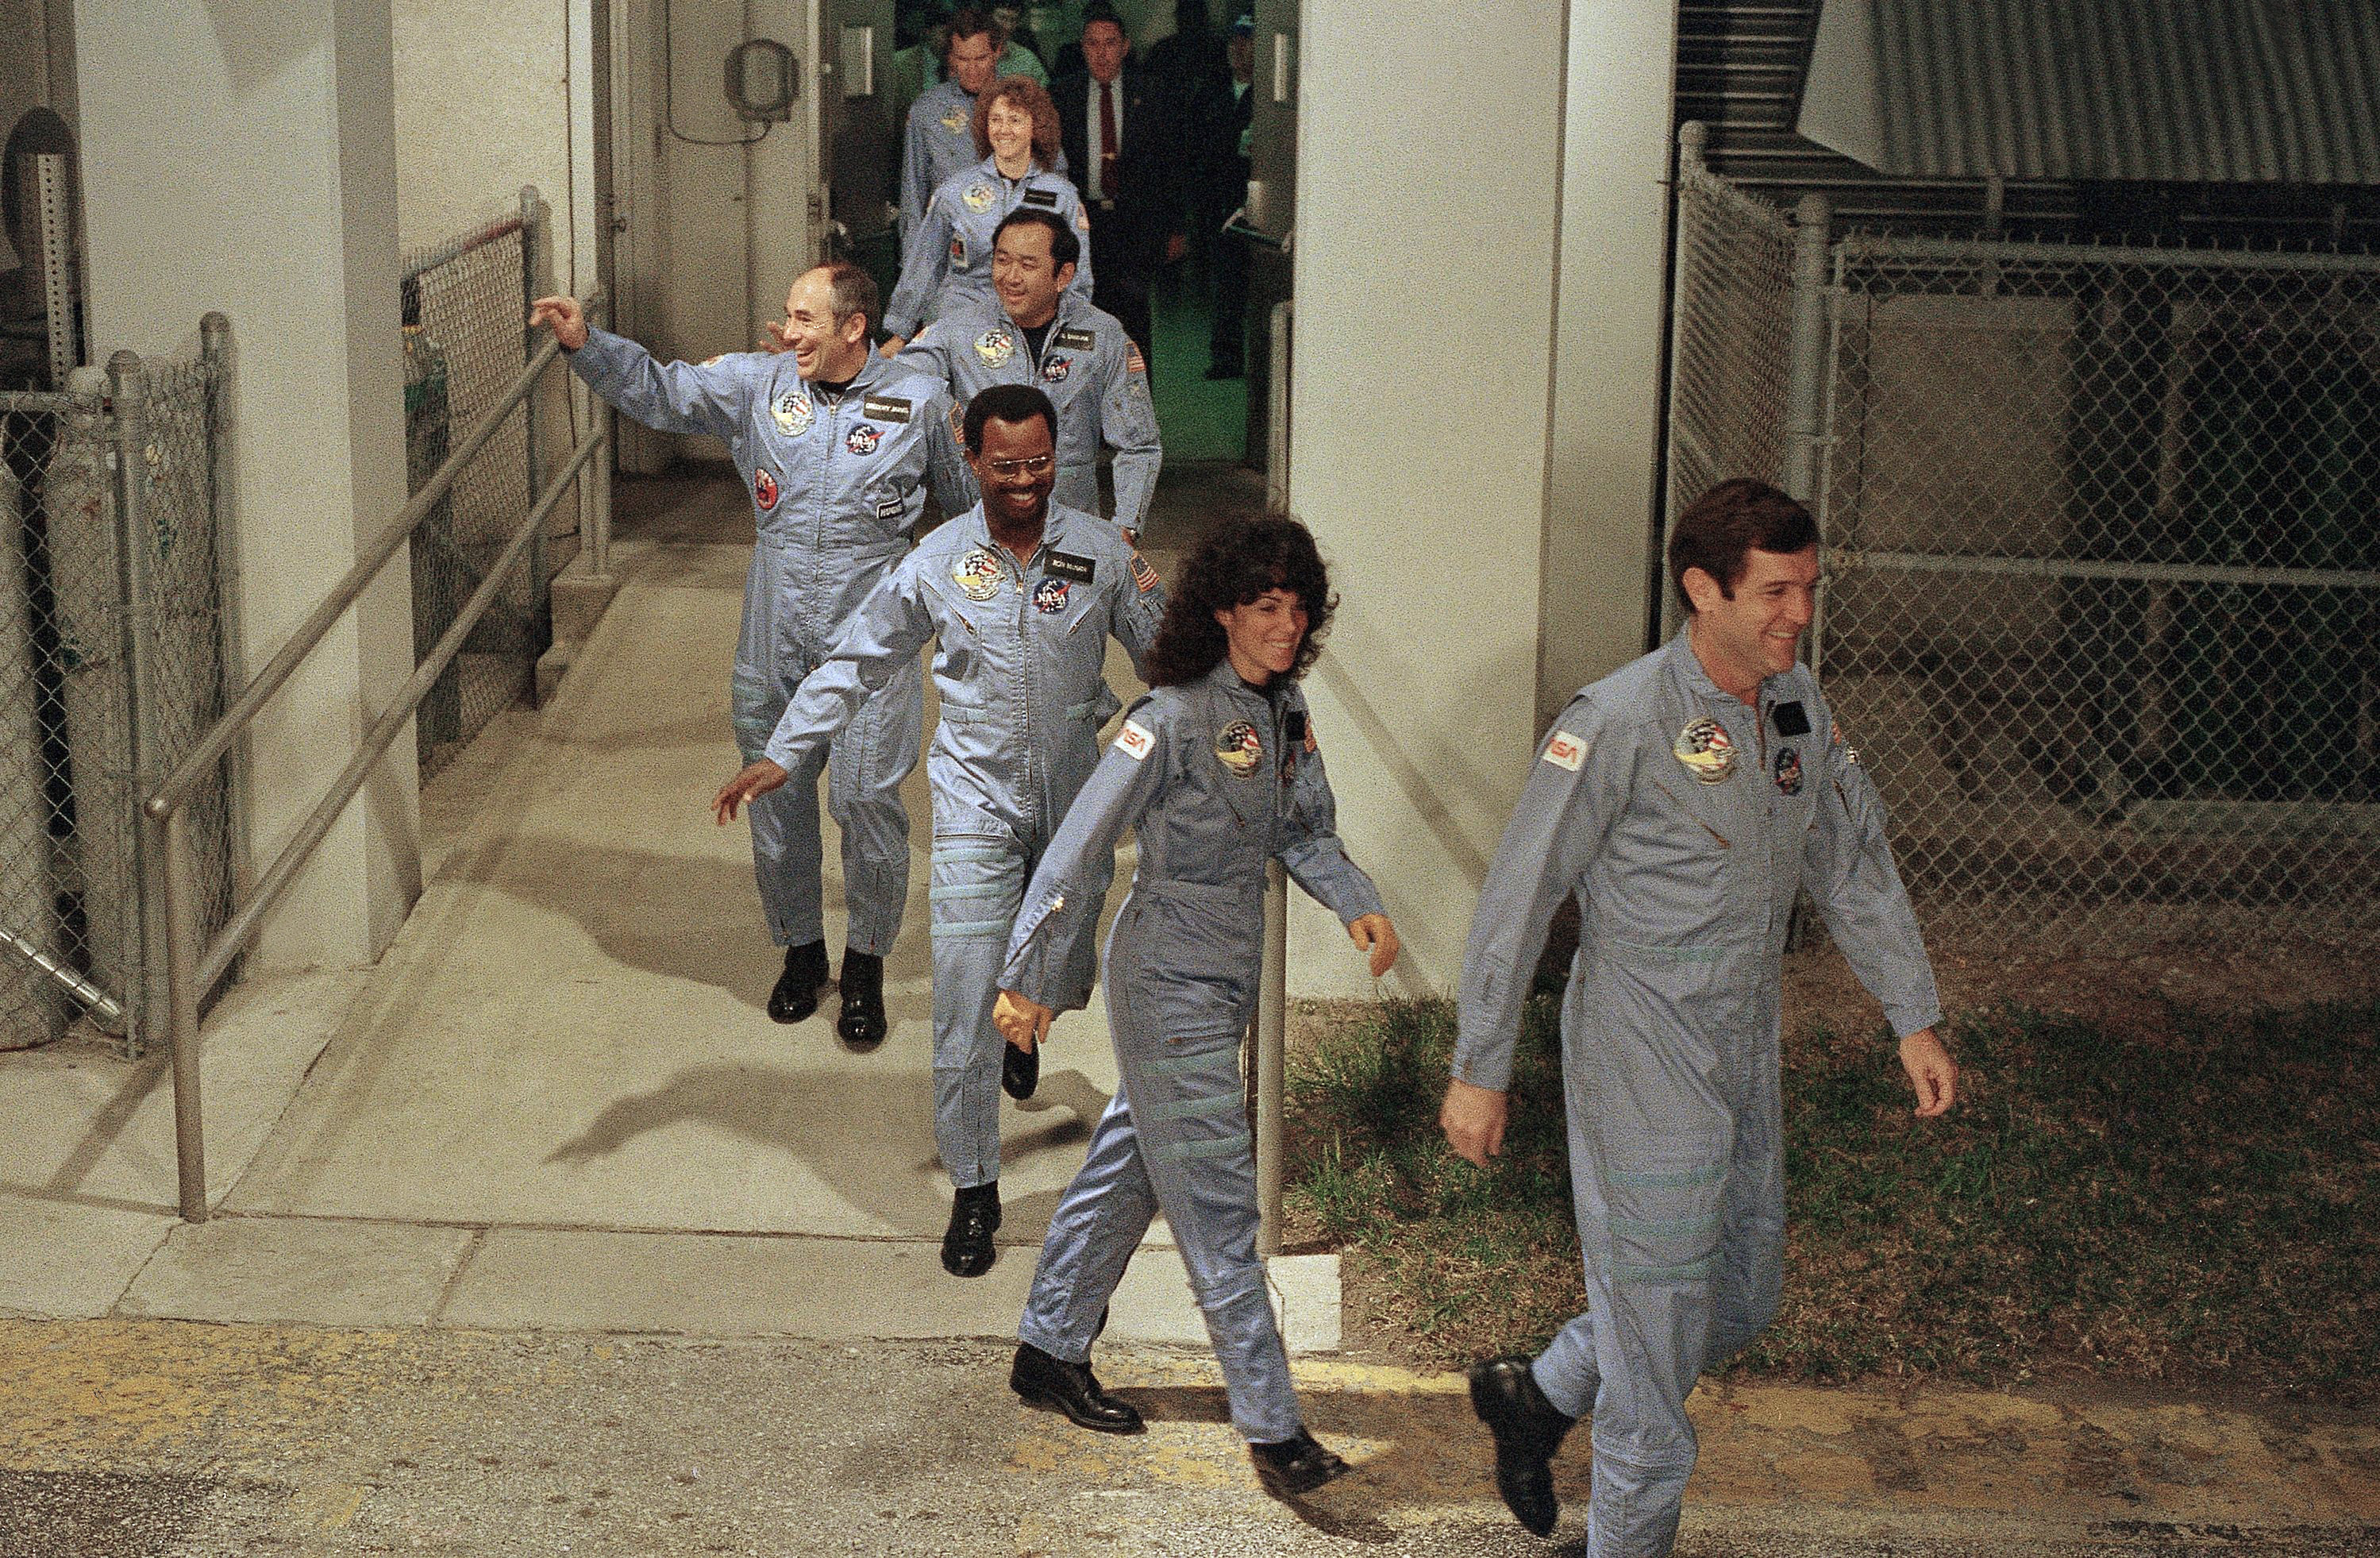 space shuttle challenger management - photo #25